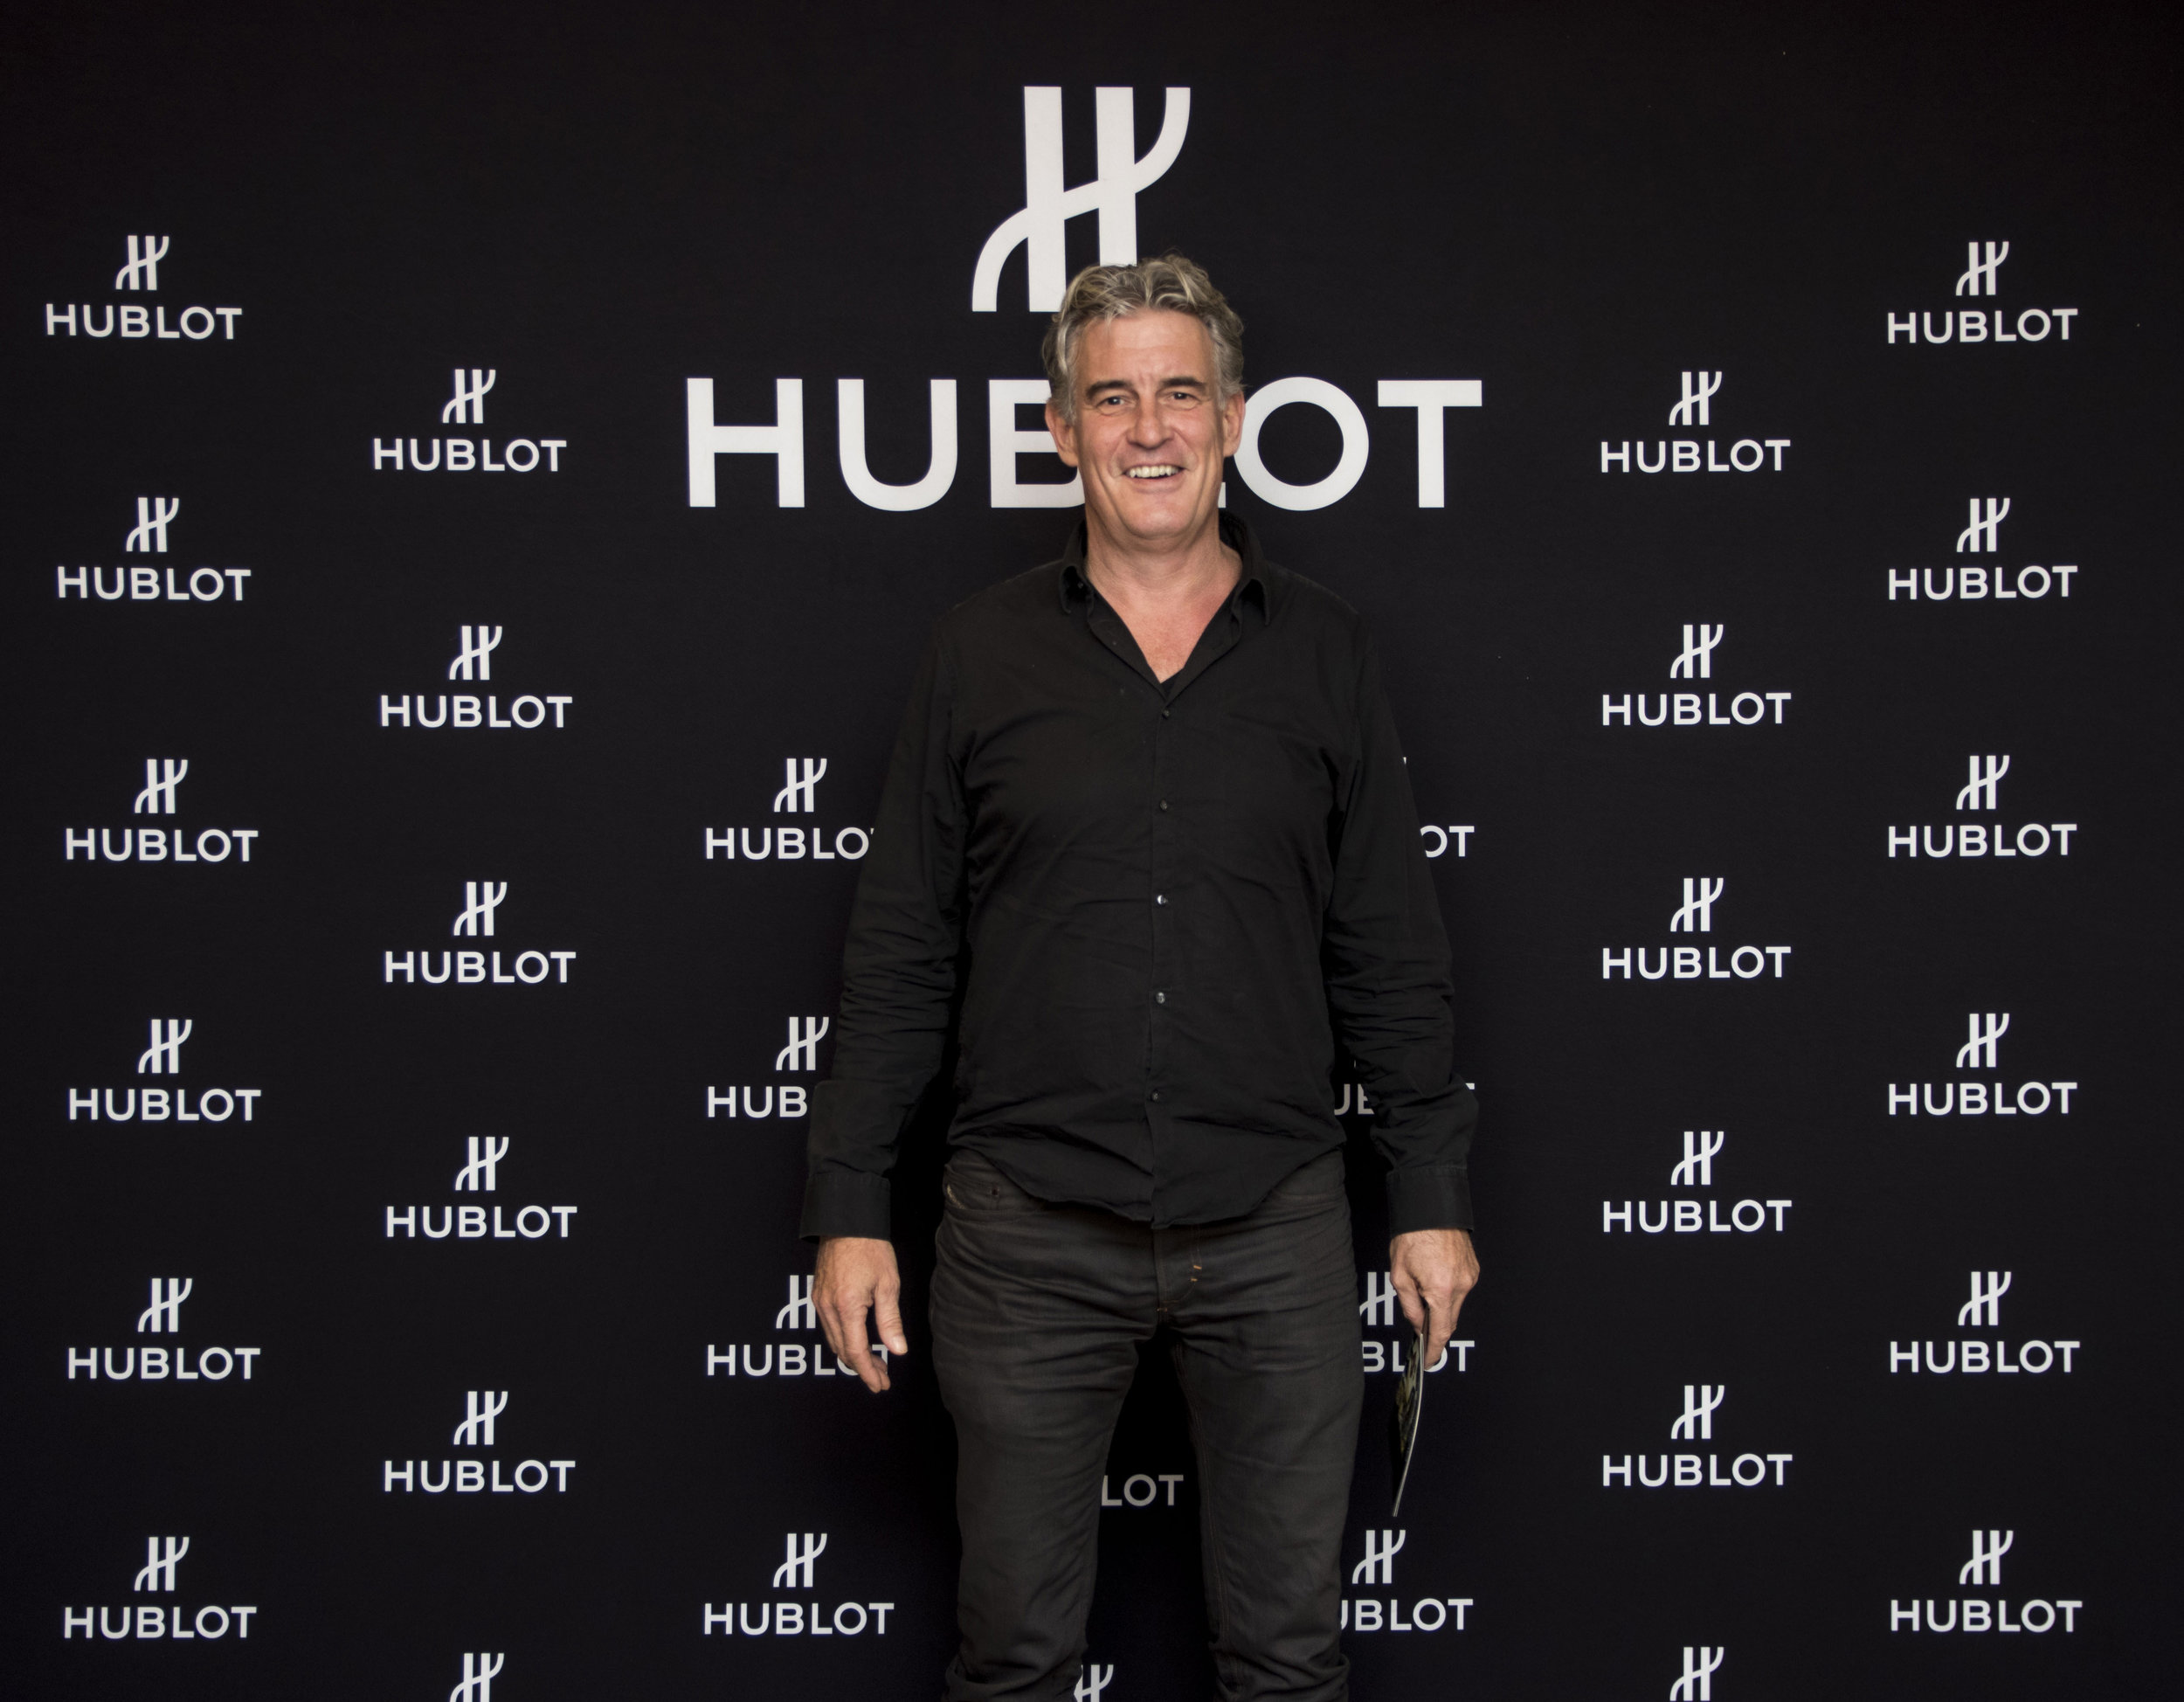 luxurygroupswitzerland_marcferrero_hublot_web014.jpg